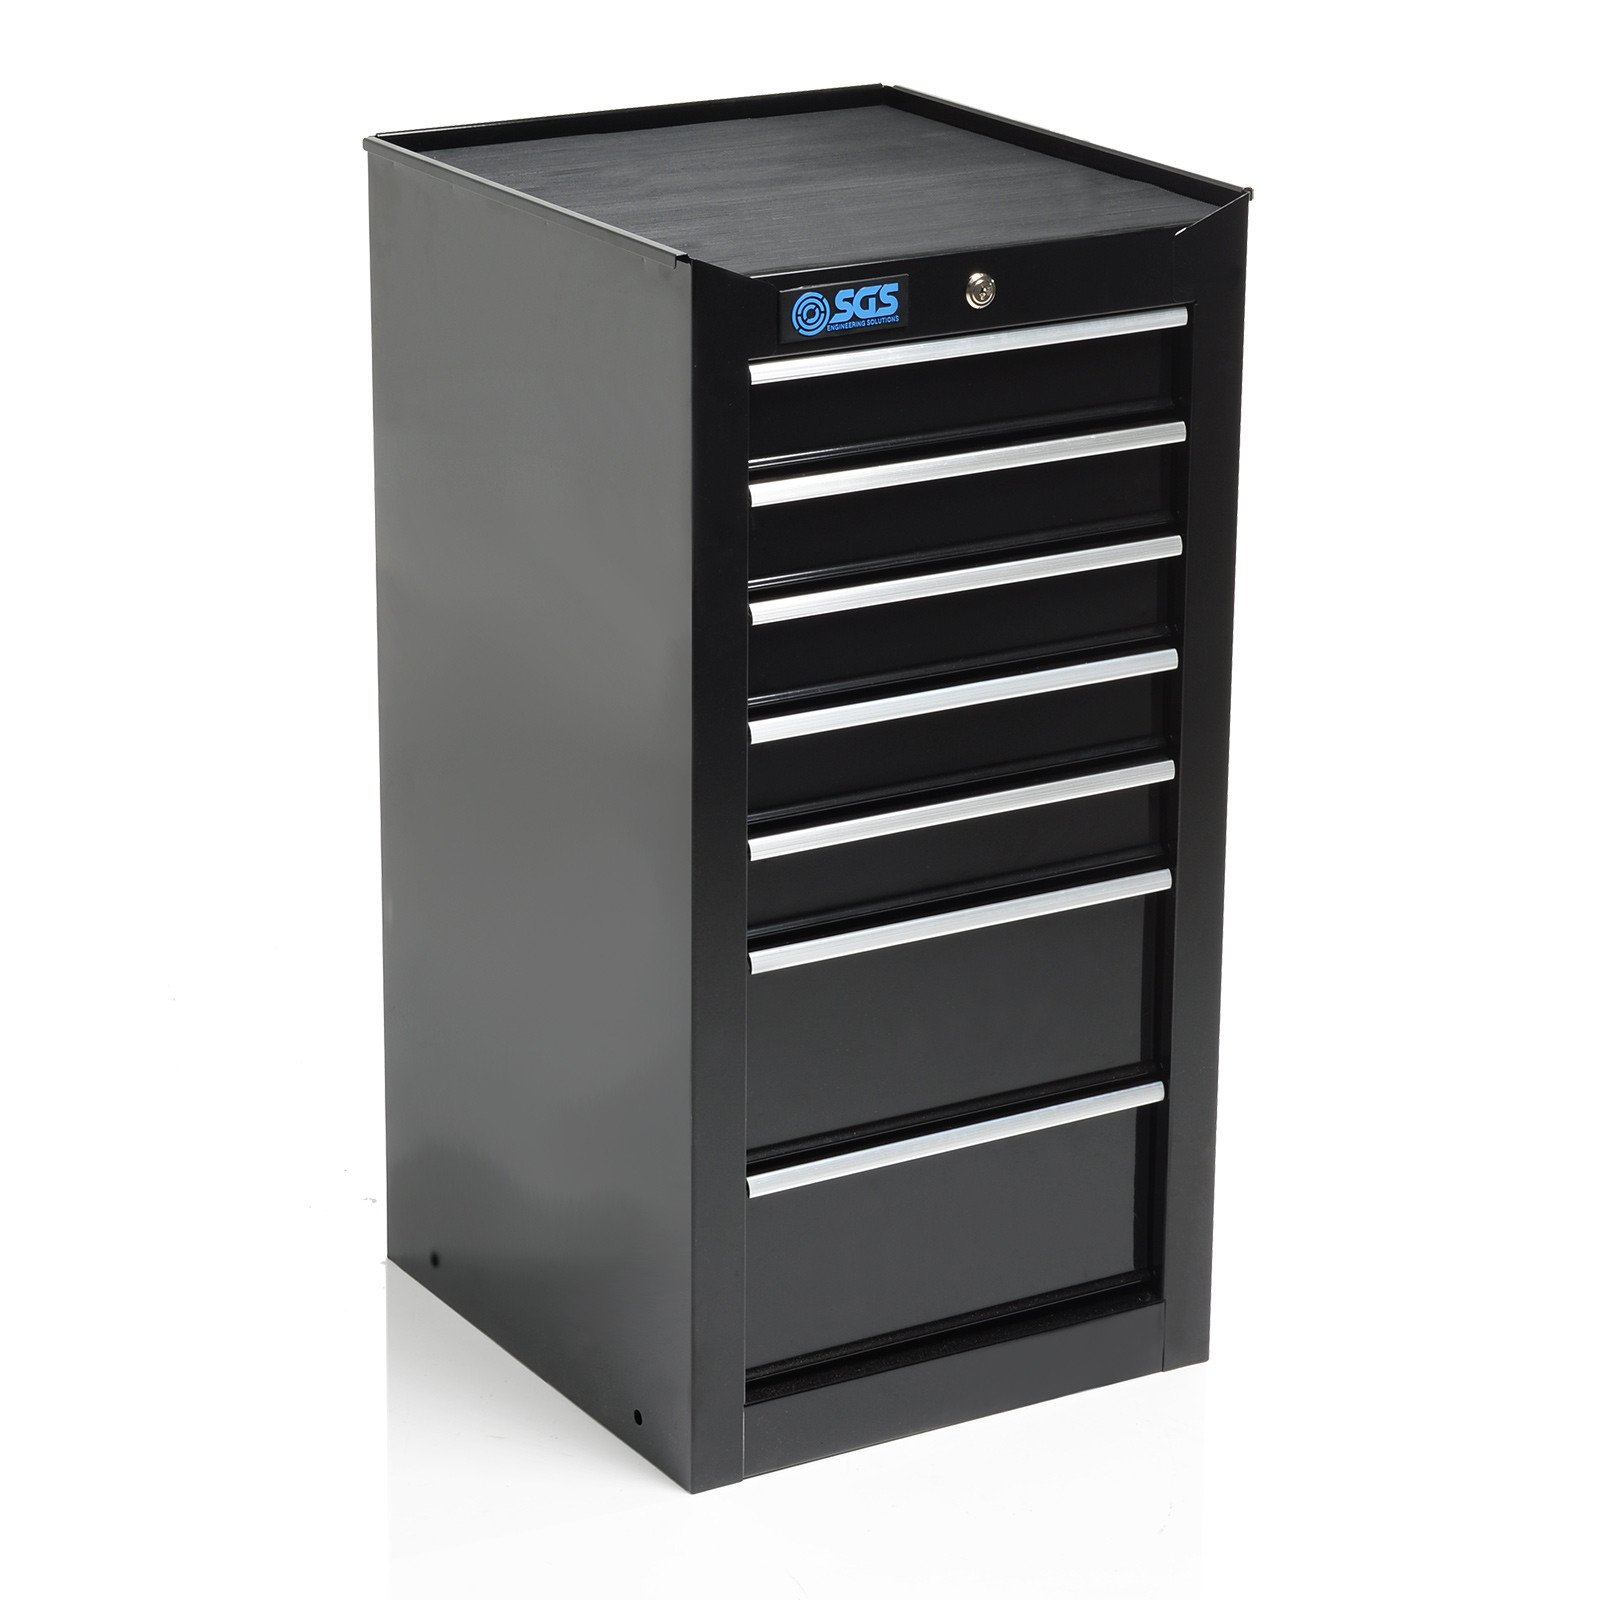 craftsman heavy cabinet chest amazon steel com construction glide side top duty box drawer dp smooth all tool drawers